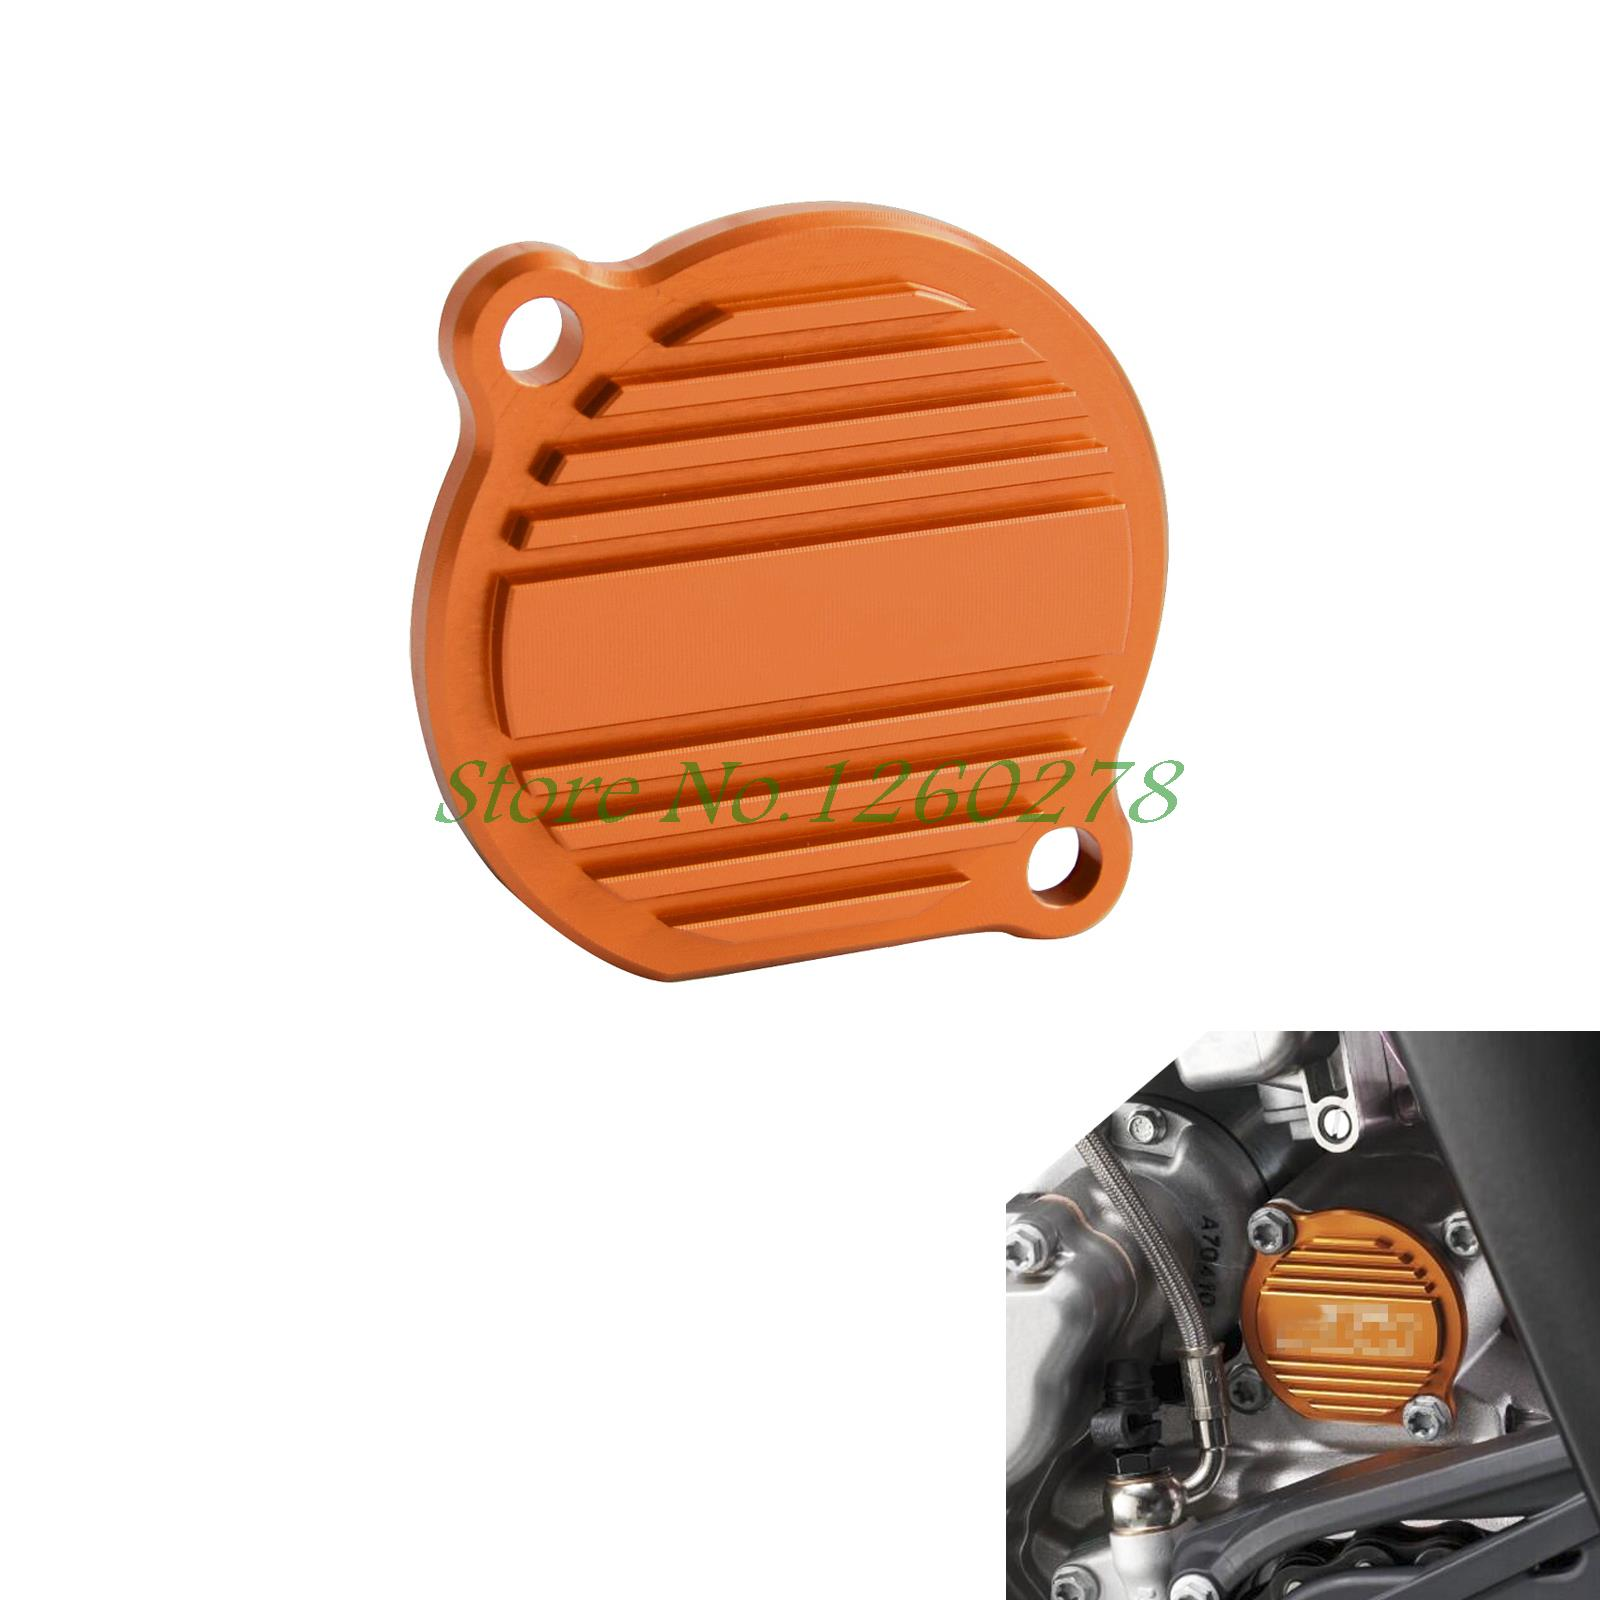 Orange CNC Billet Factory Oil Filter Cover For KTM SX EXC XC-F/XCF-W 250 400 450 520 525 540 950 990 orange cnc billet factory oil filter cover for ktm sx exc xc f xcf w 250 400 450 520 525 540 950 990